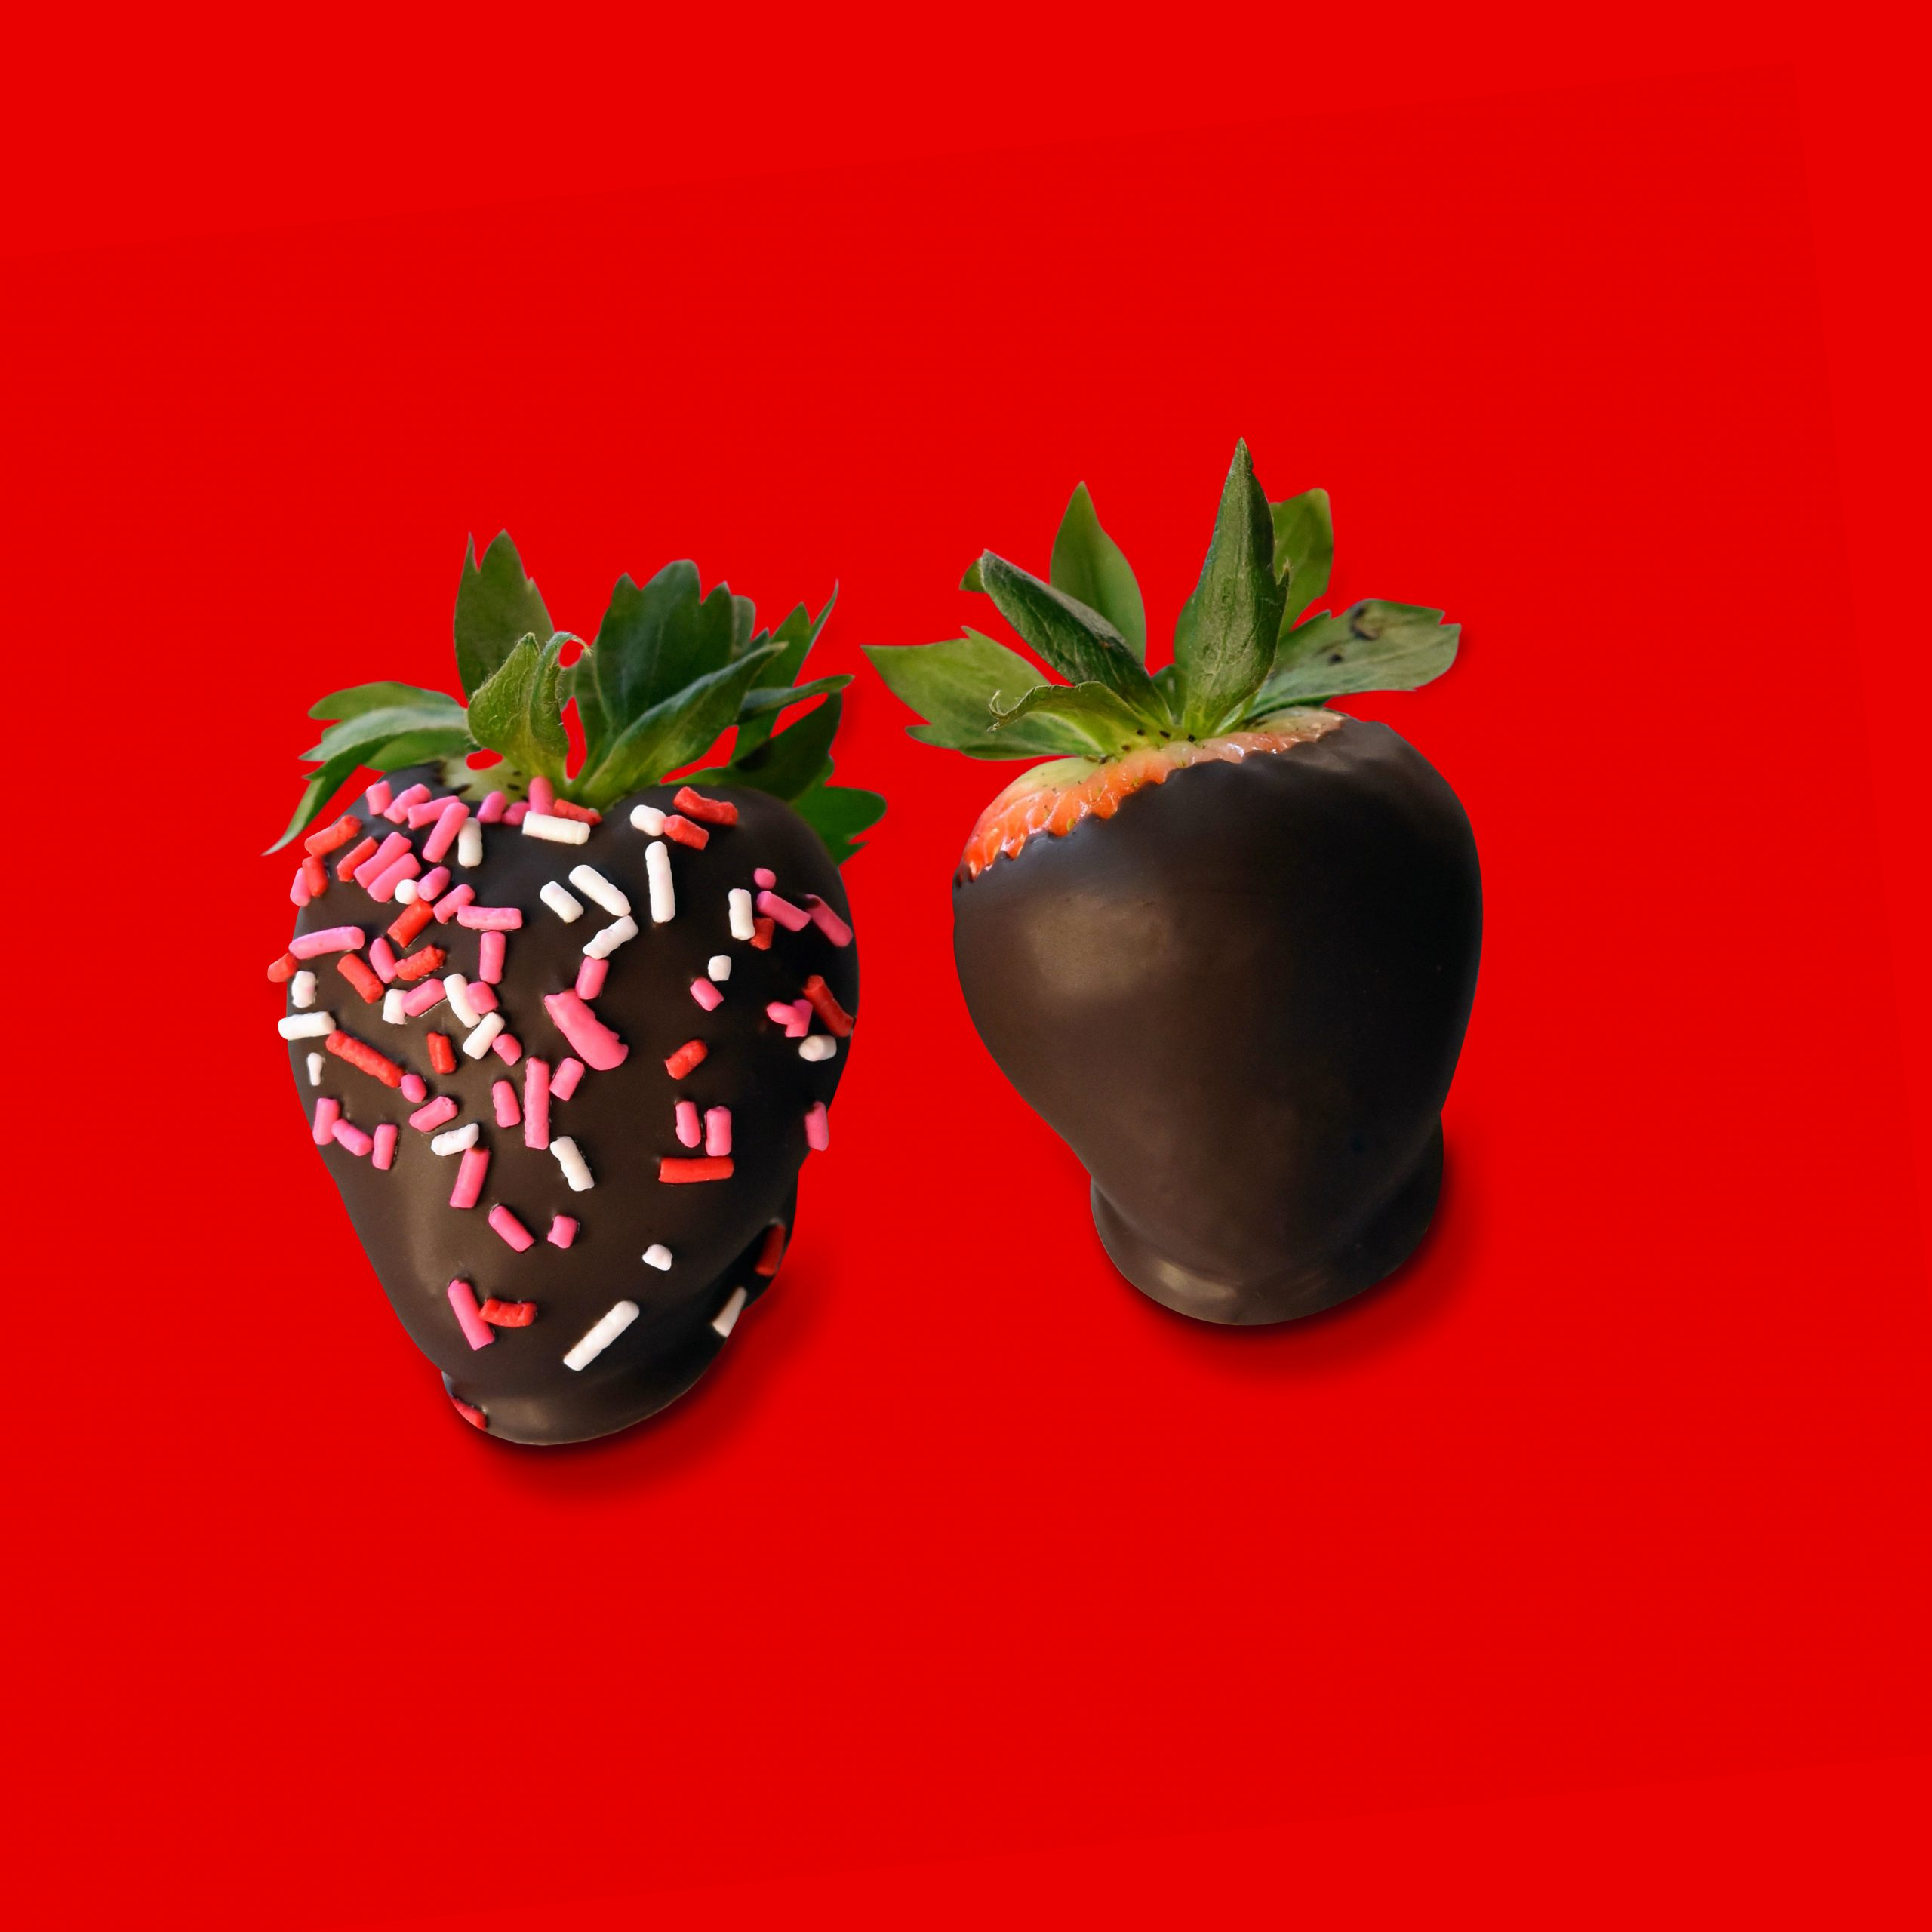 Two chocolate covered strawberries with sprinkles over read background